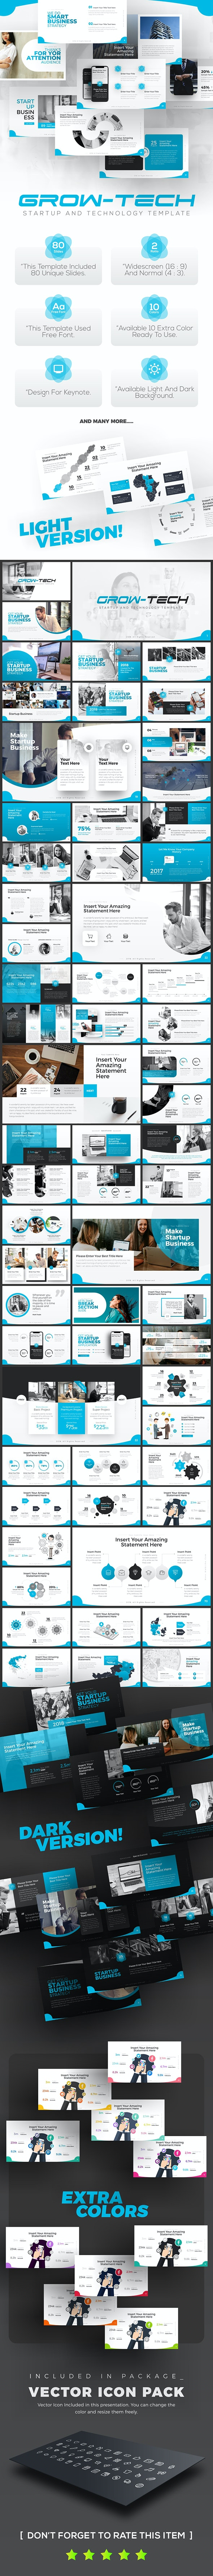 Grow-Tech Business Startup keynote Template - Keynote Templates Presentation Templates